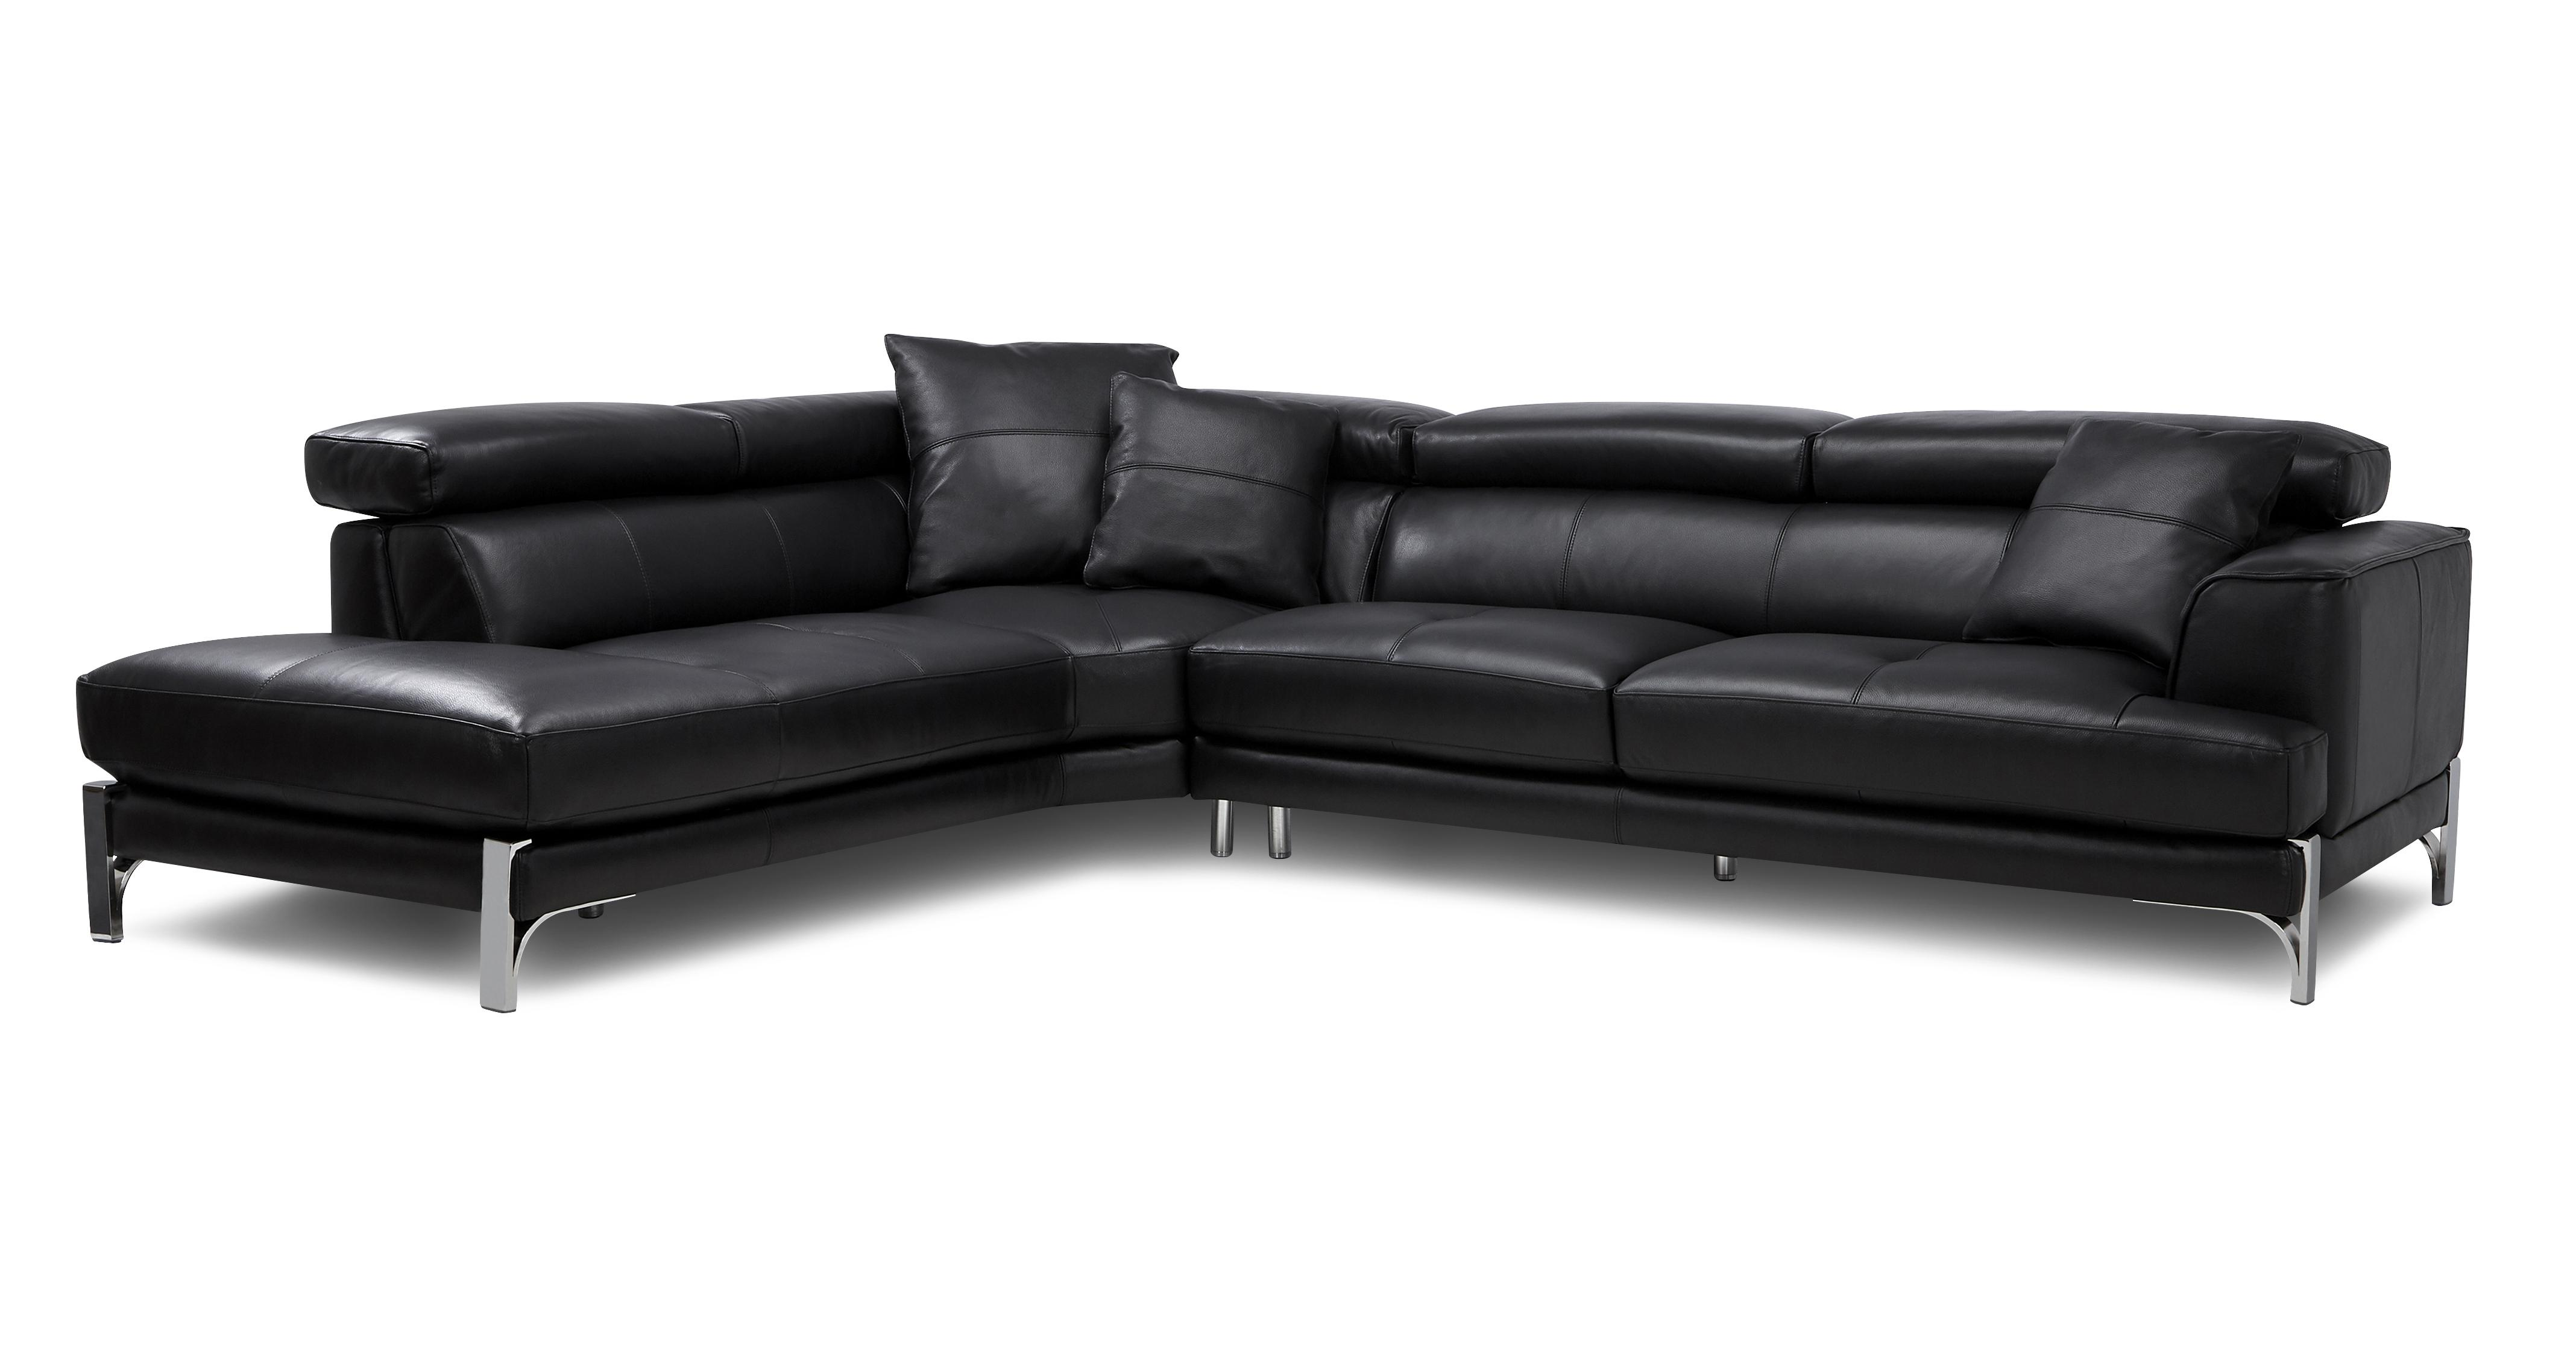 Stage Right Arm Facing Large Corner Sofa New Club Dfs